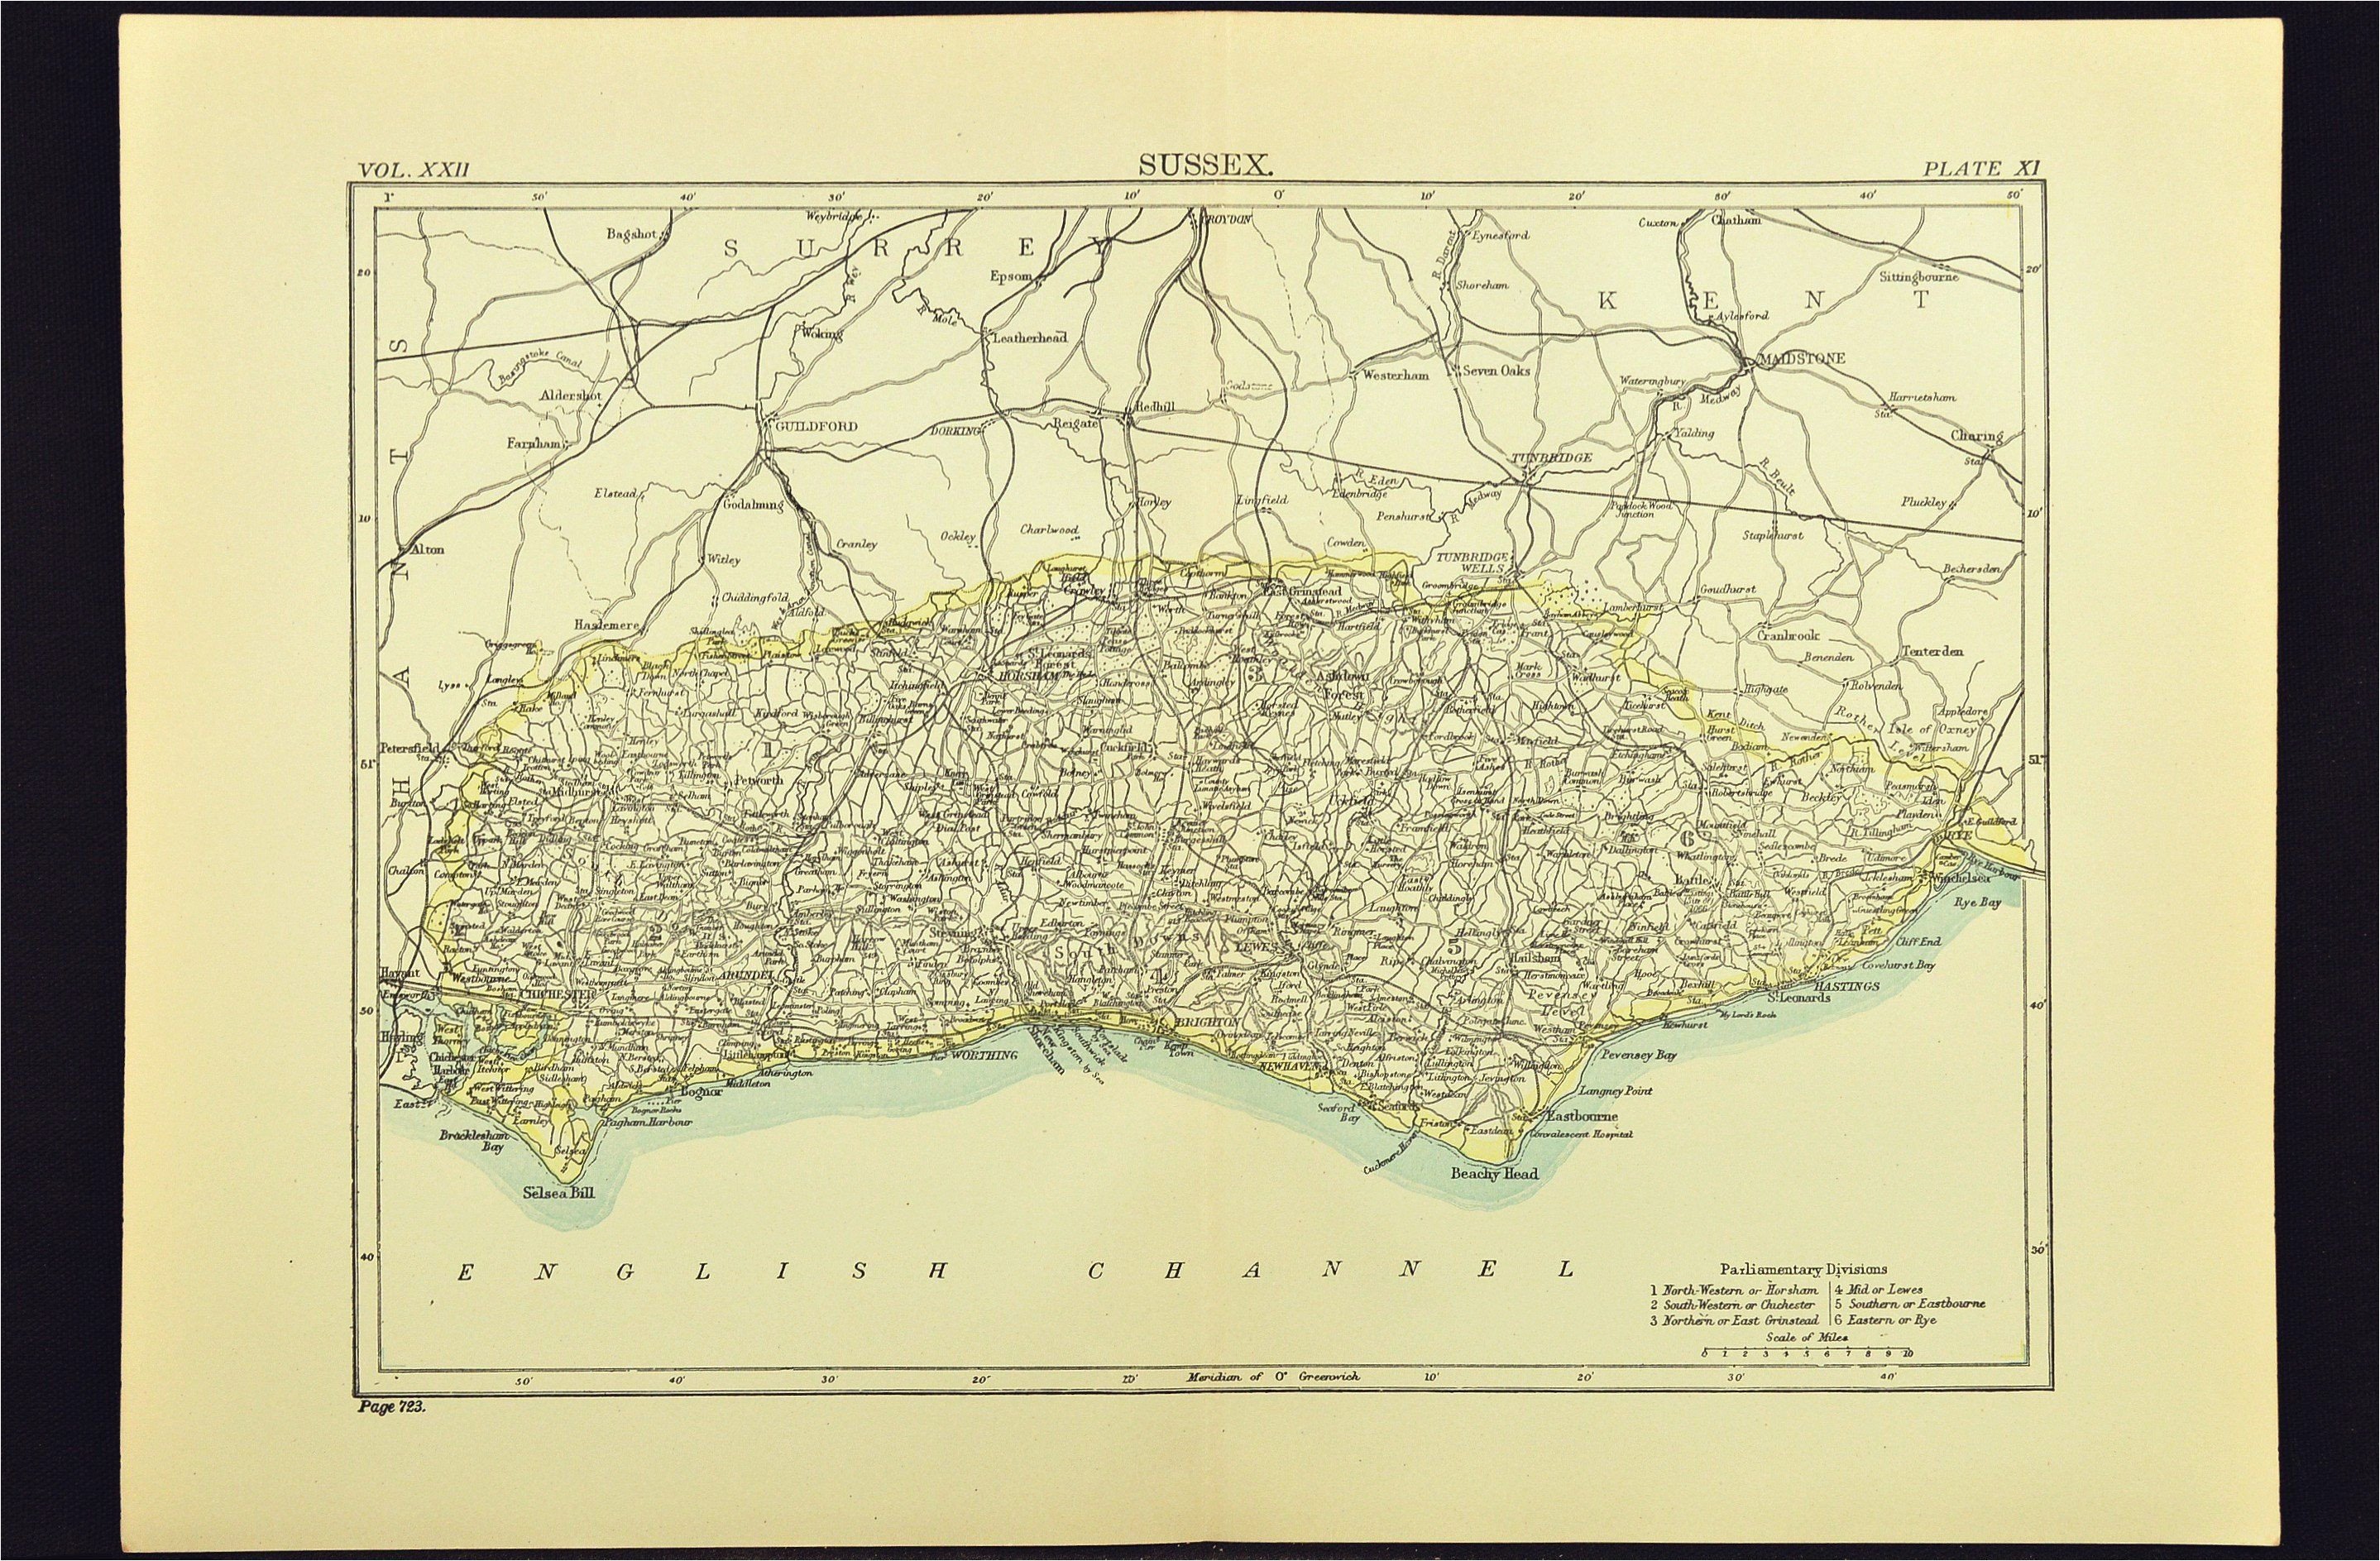 antique sussex map of sussex county england united kingdom